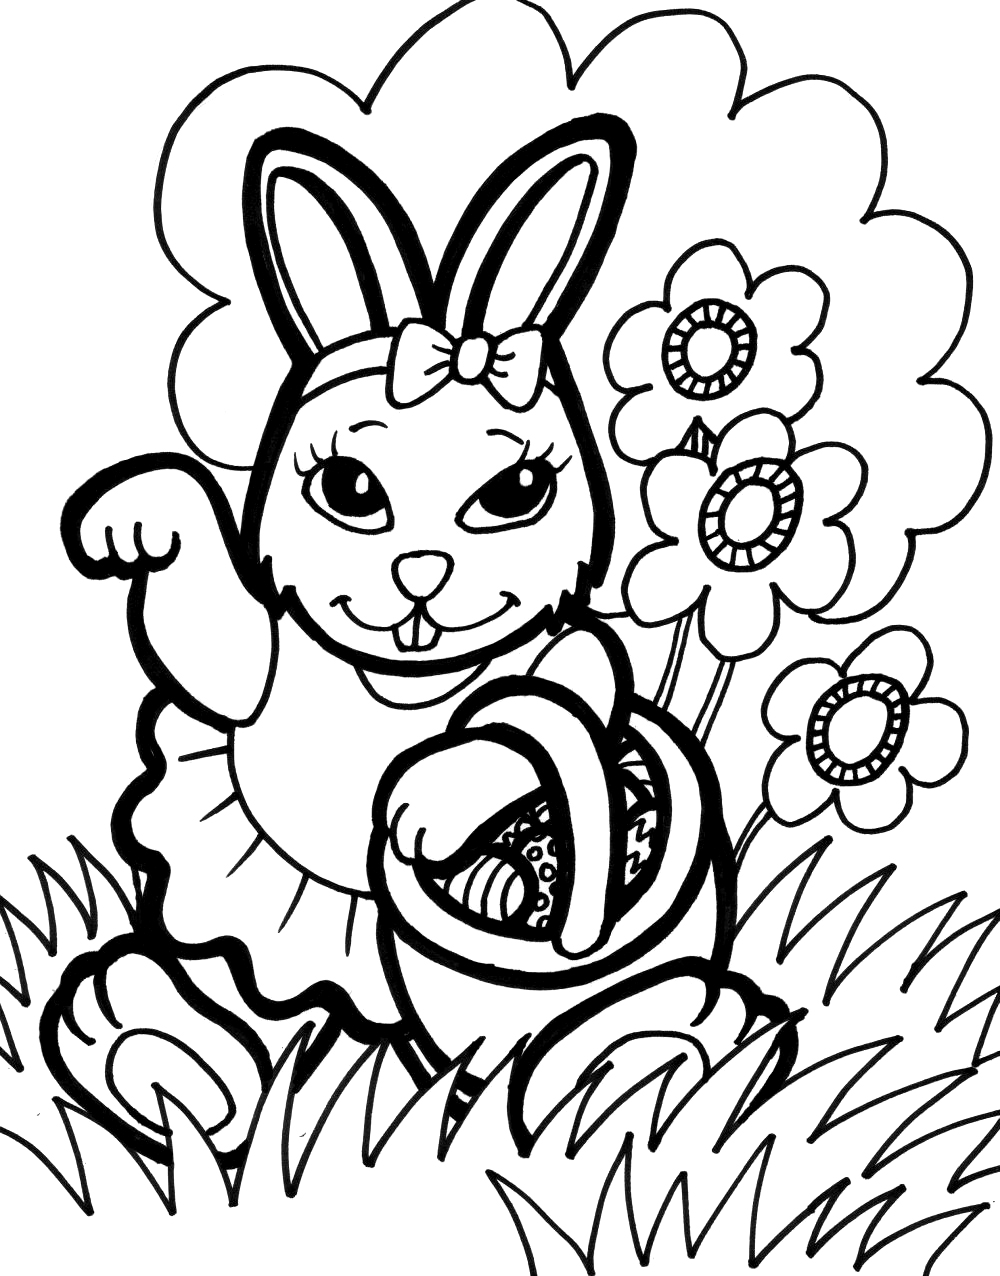 coloring pictures for kids free printable tangled coloring pages for kids for pictures kids coloring